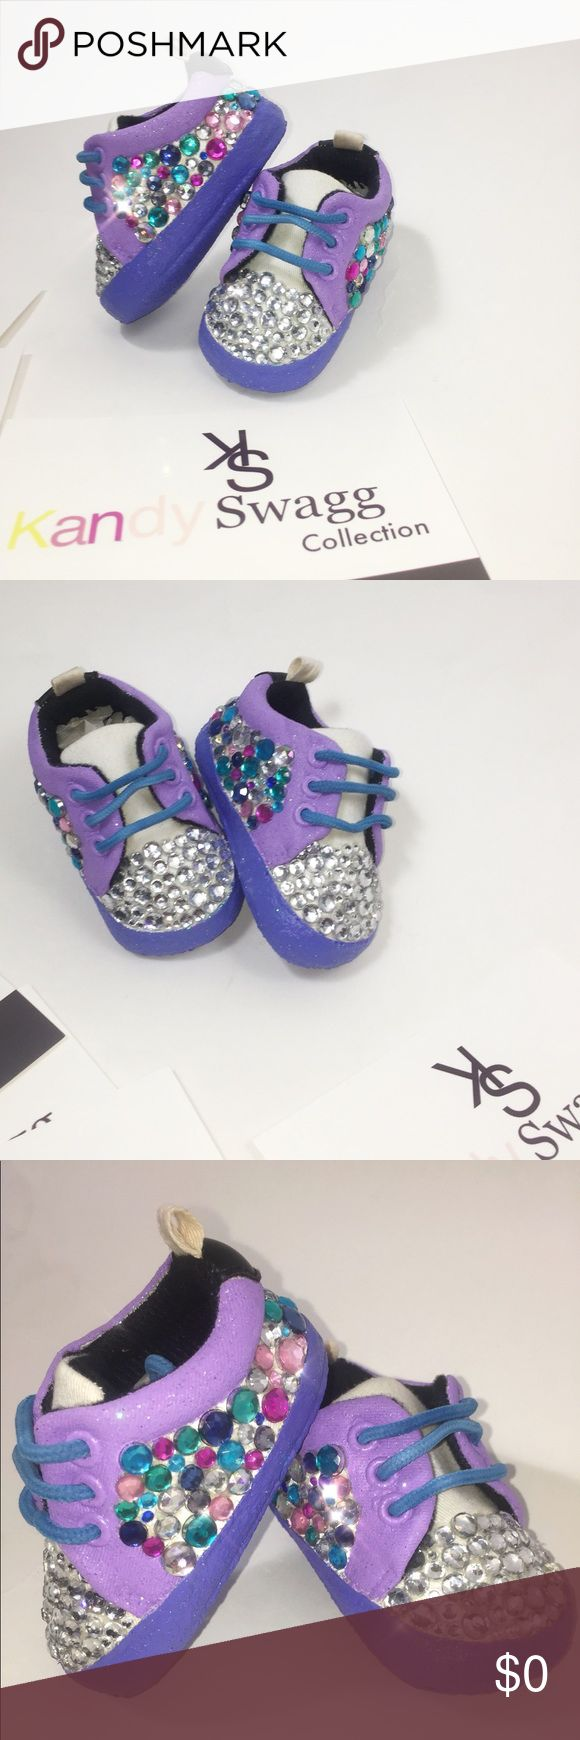 Purple skittles Our Purple skittles are a girls dream! Full rhinestone shoe half rhinestone tongue, follow us on FB & IG @KandySwaggc for videos of out products:) kandy Swagg Shoes Baby & Walker